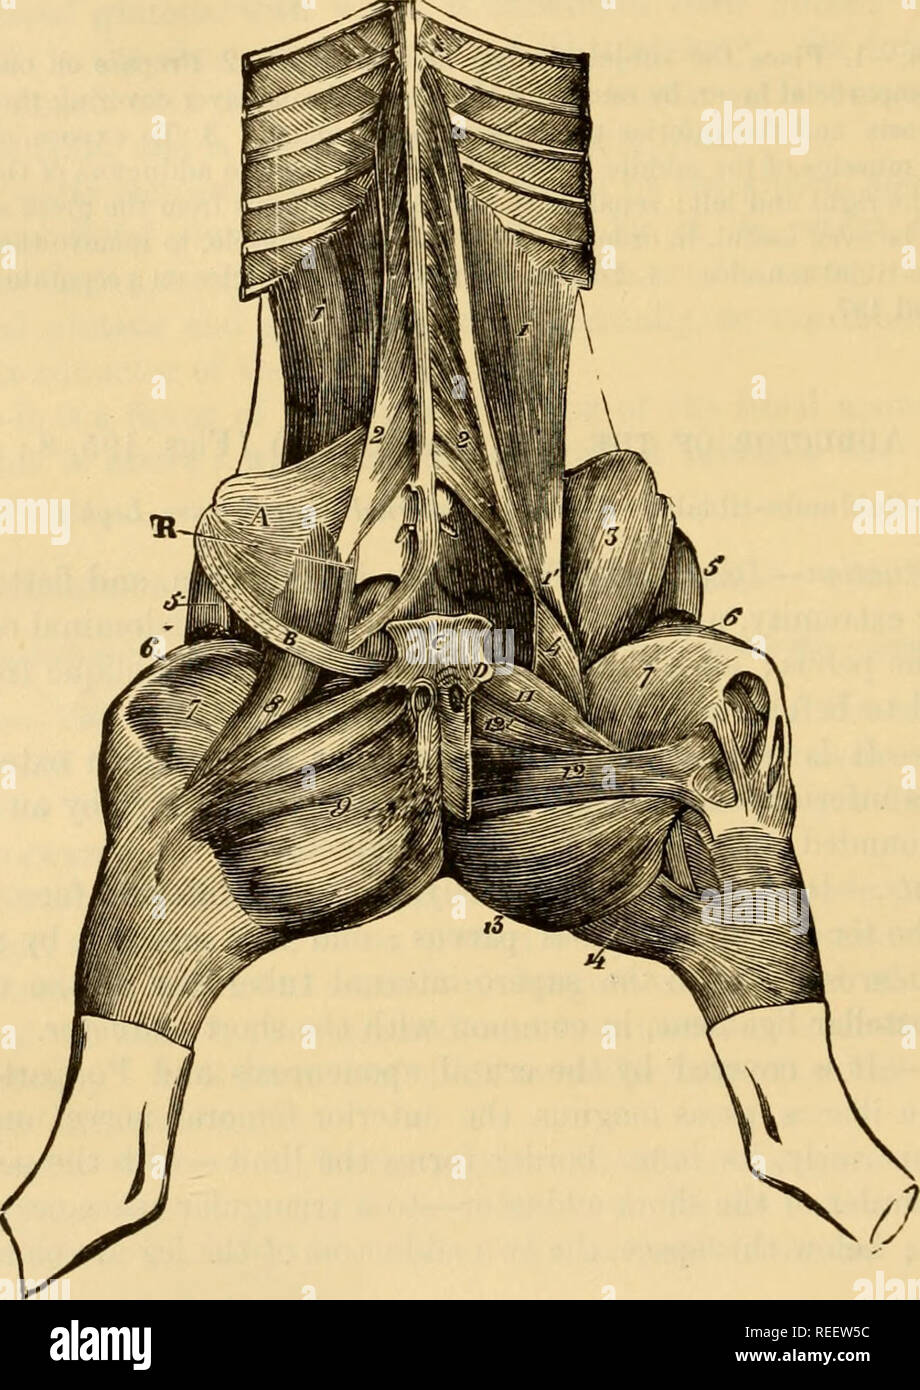 . The comparative anatomy of the domesticated animals. Horses; Veterinary anatomy. 354 THE MUSCLES. Attachments.—It originates, by the whole extent of its superior border, from the under surface of the ischio-pubic symphysis, aud is united to the muscle of the opposite side—on^m. Its terminal aponeurosis, united to that of the sar- torious, is inserted on the internal patellar ligament and the internal face of the tibia—movable insertion; posteriorly, it is united to the aponeurosis of the semi- tendinosus, and with it forms the tibial aponeurosis enveloping the tibial muscles. Relations.—Its  - Stock Image